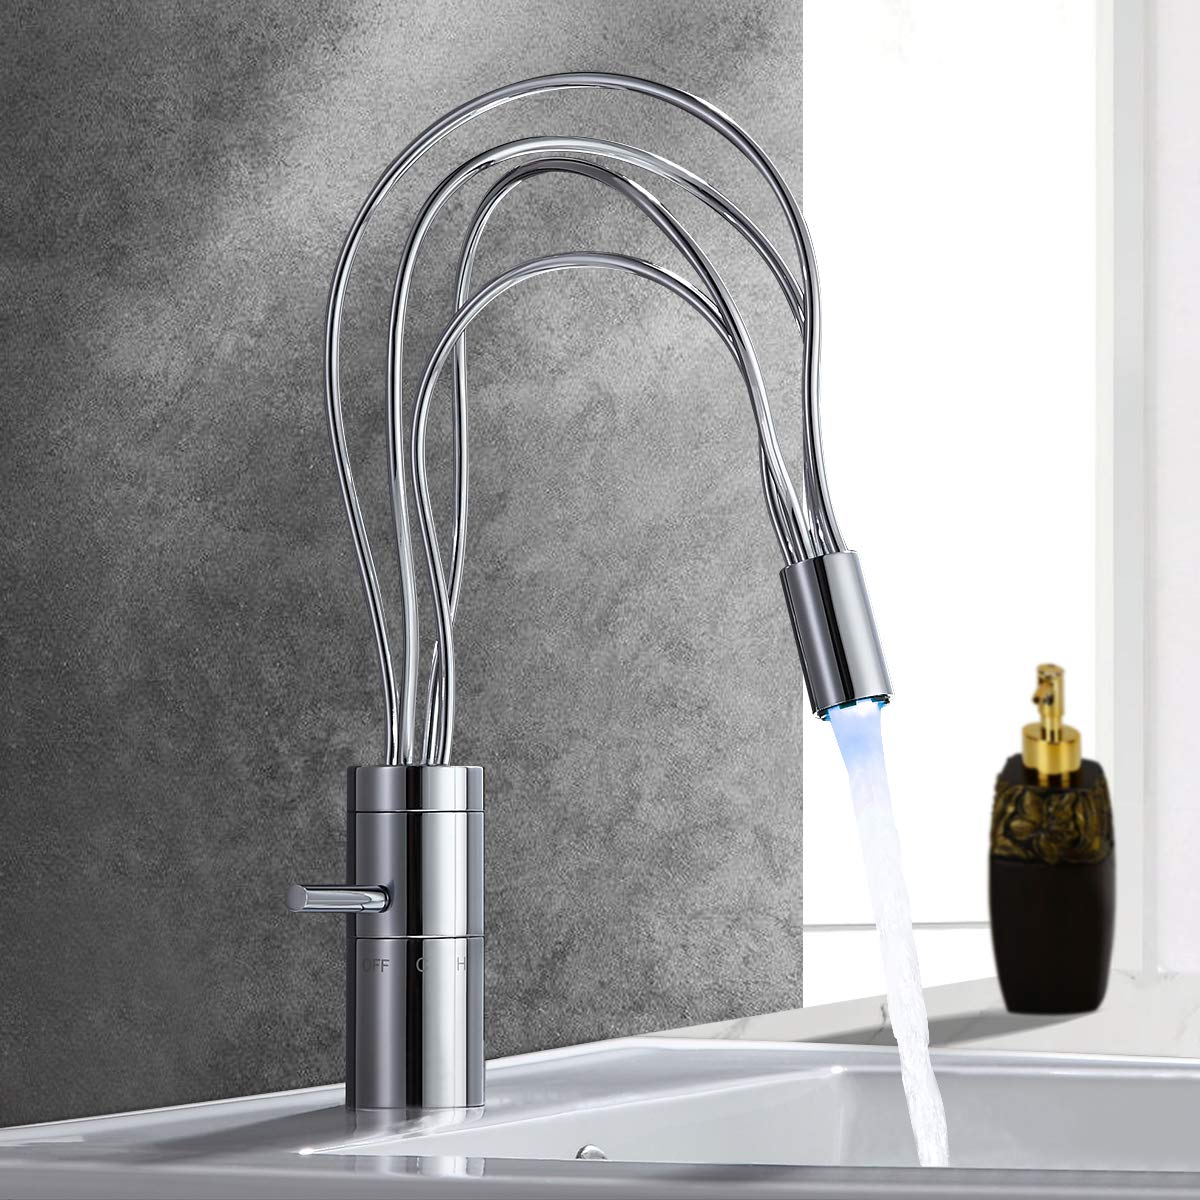 Jiuzhuo Modern Single Handle Single Hole Nest LED Bathroom Sink Faucet